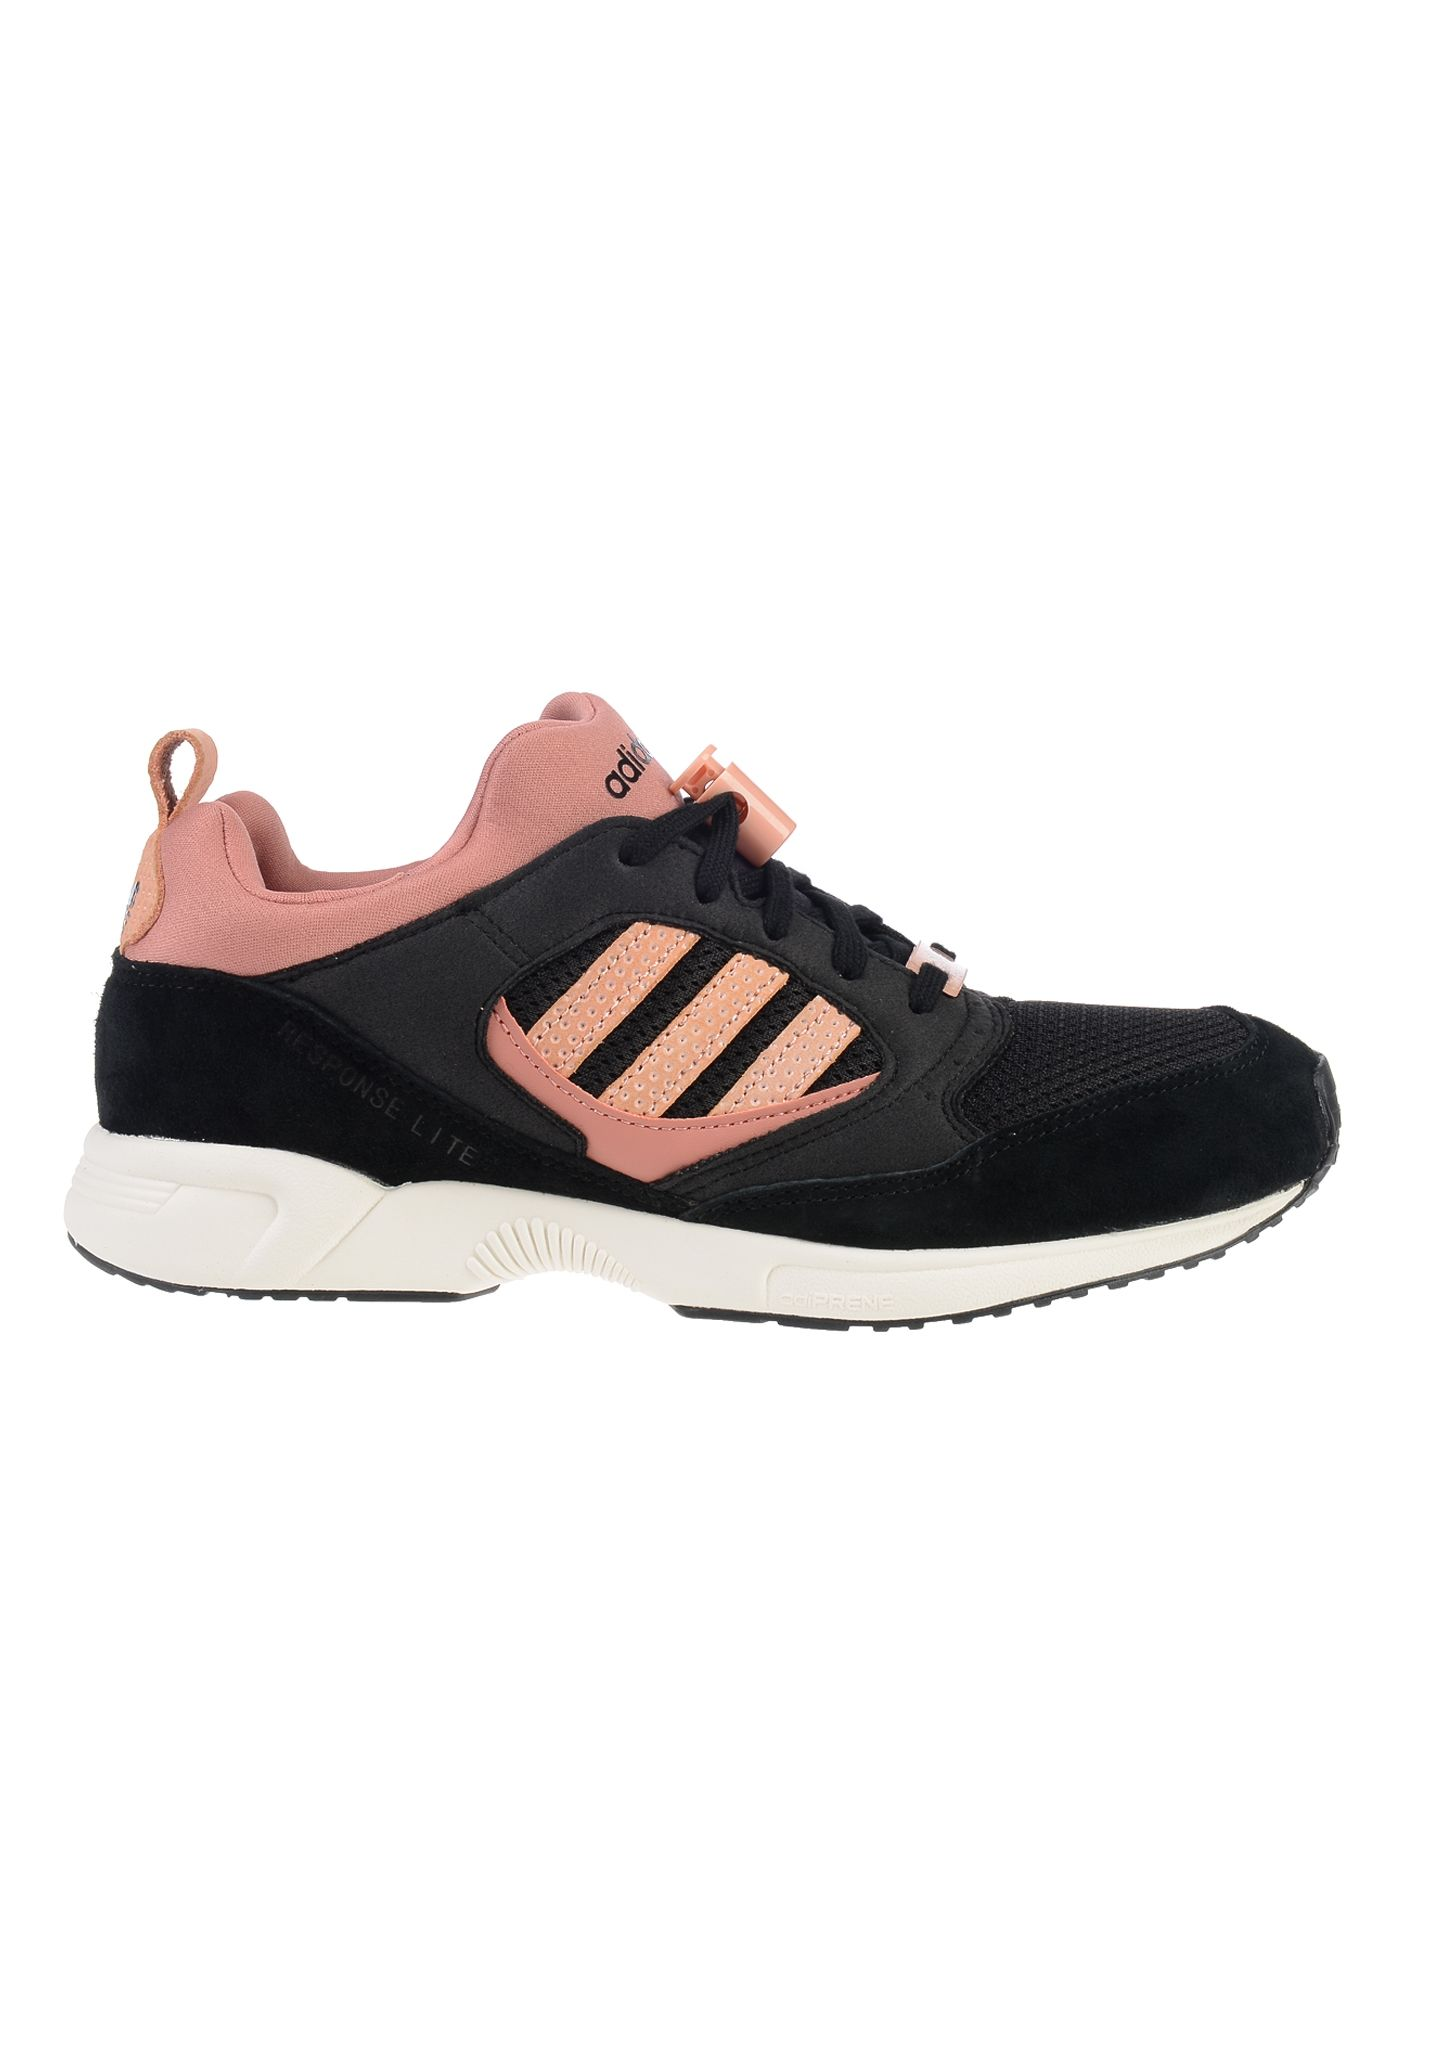 Adidas Torsion Zwart